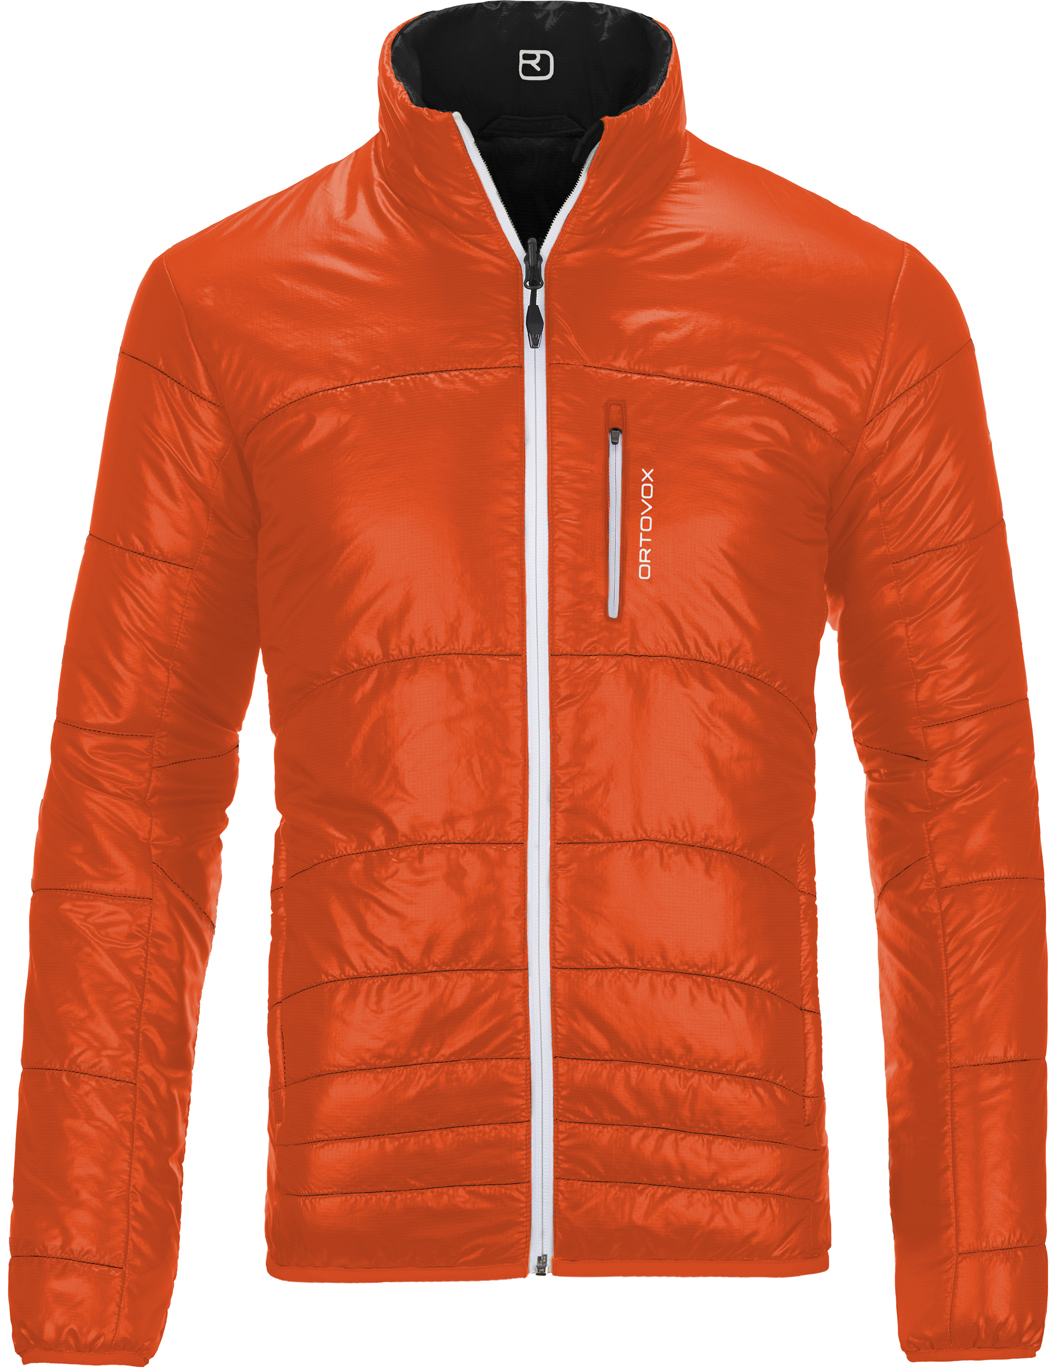 Test de la veste Swisswool light Piz Boval d'Ortovox